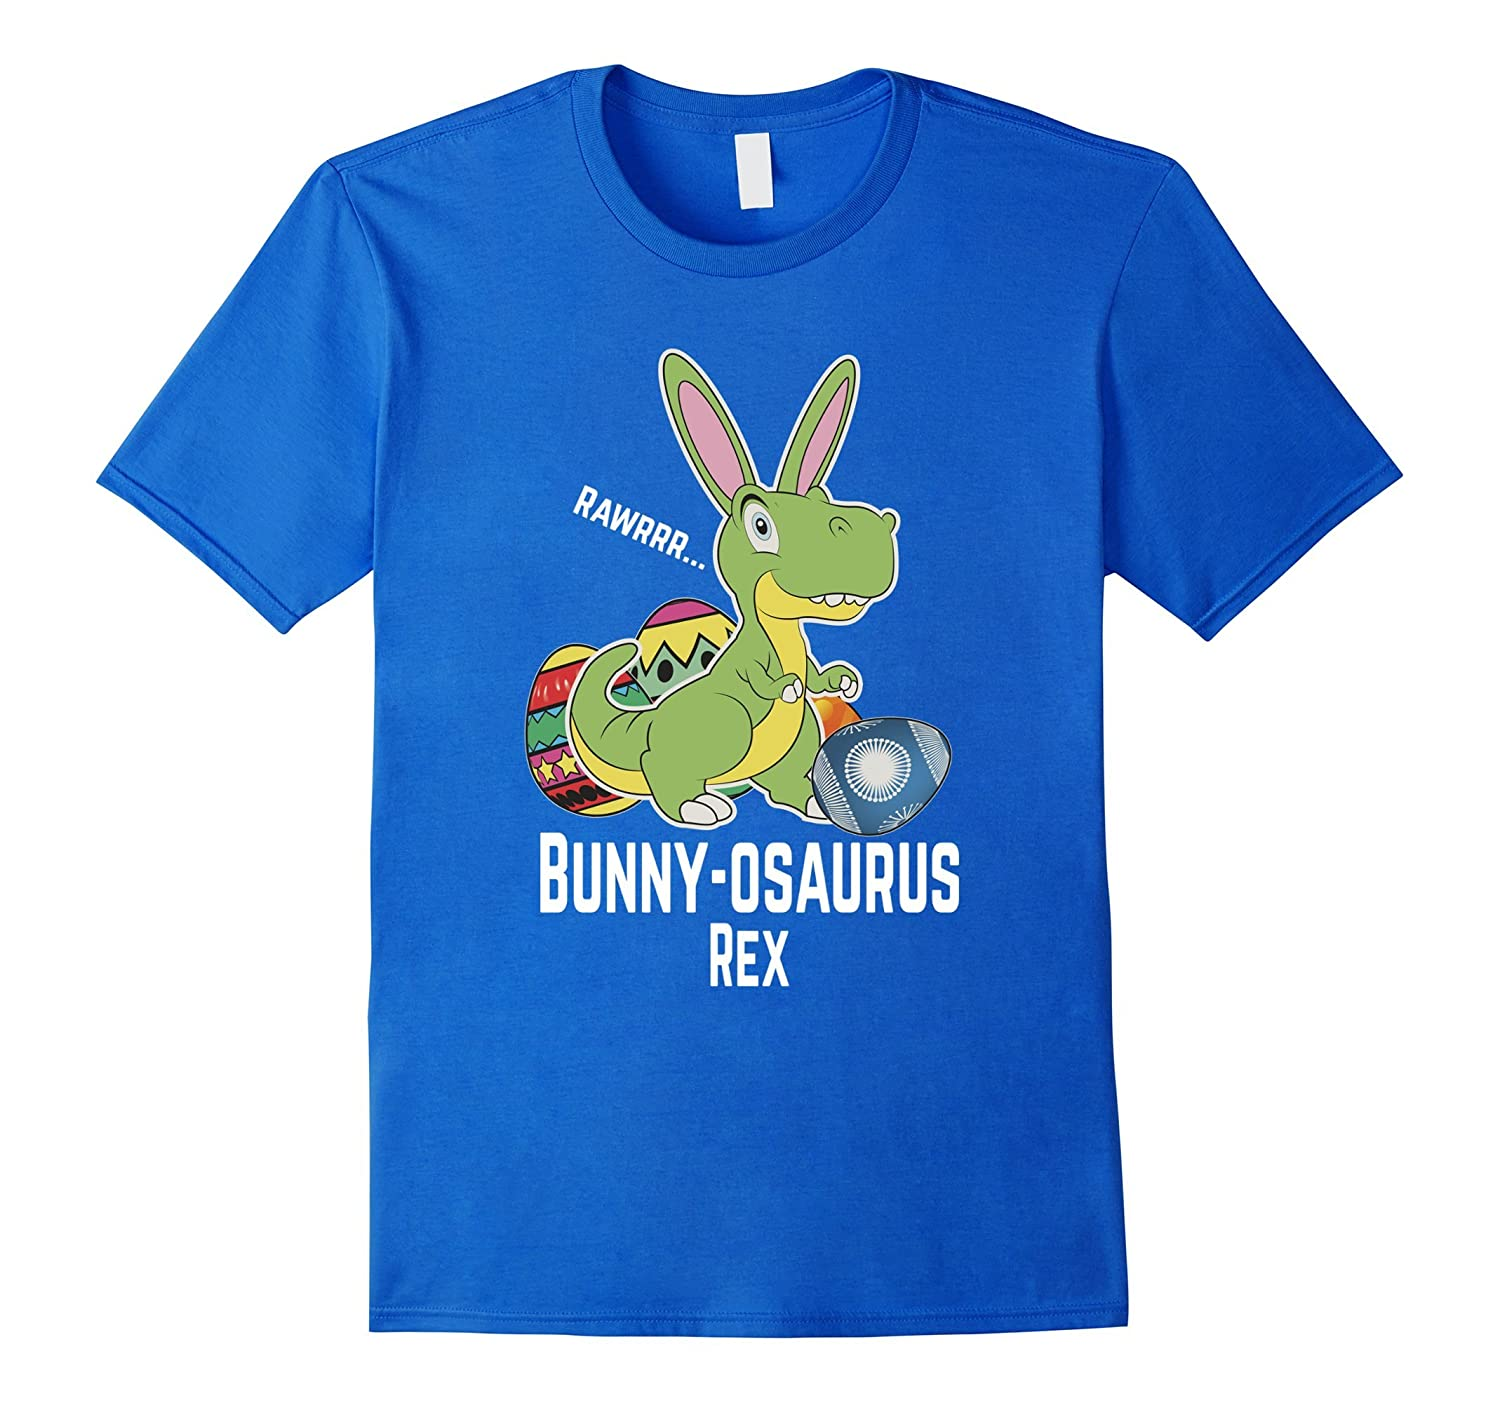 489b4e9a Easter Bunny-osaurus Funny T Shirts Kids Boys Girls Toddlers-TH ...